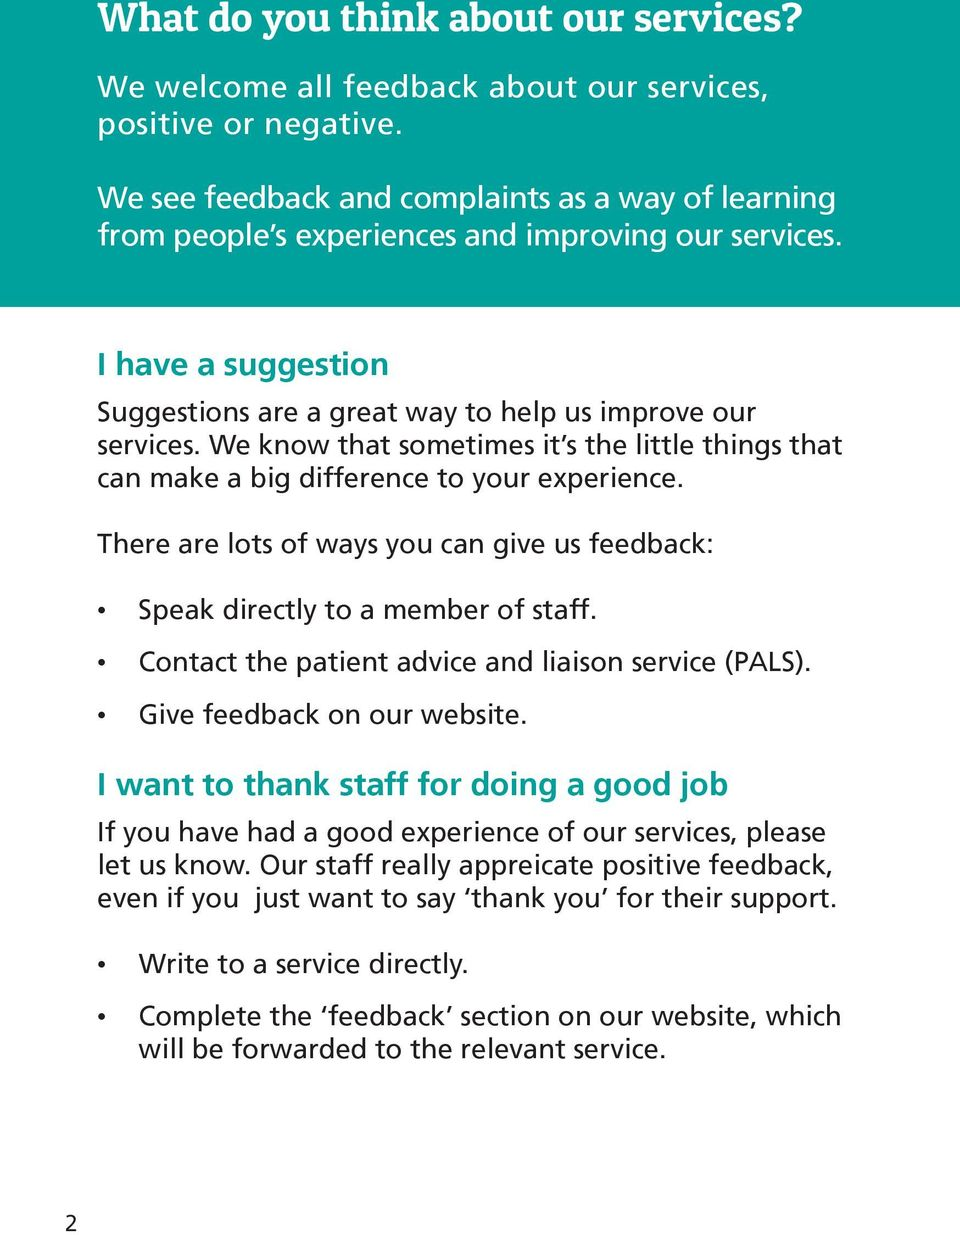 We know that sometimes it s the little things that can make a big difference to your experience. There are lots of ways you can give us feedback: Speak directly to a member of staff.